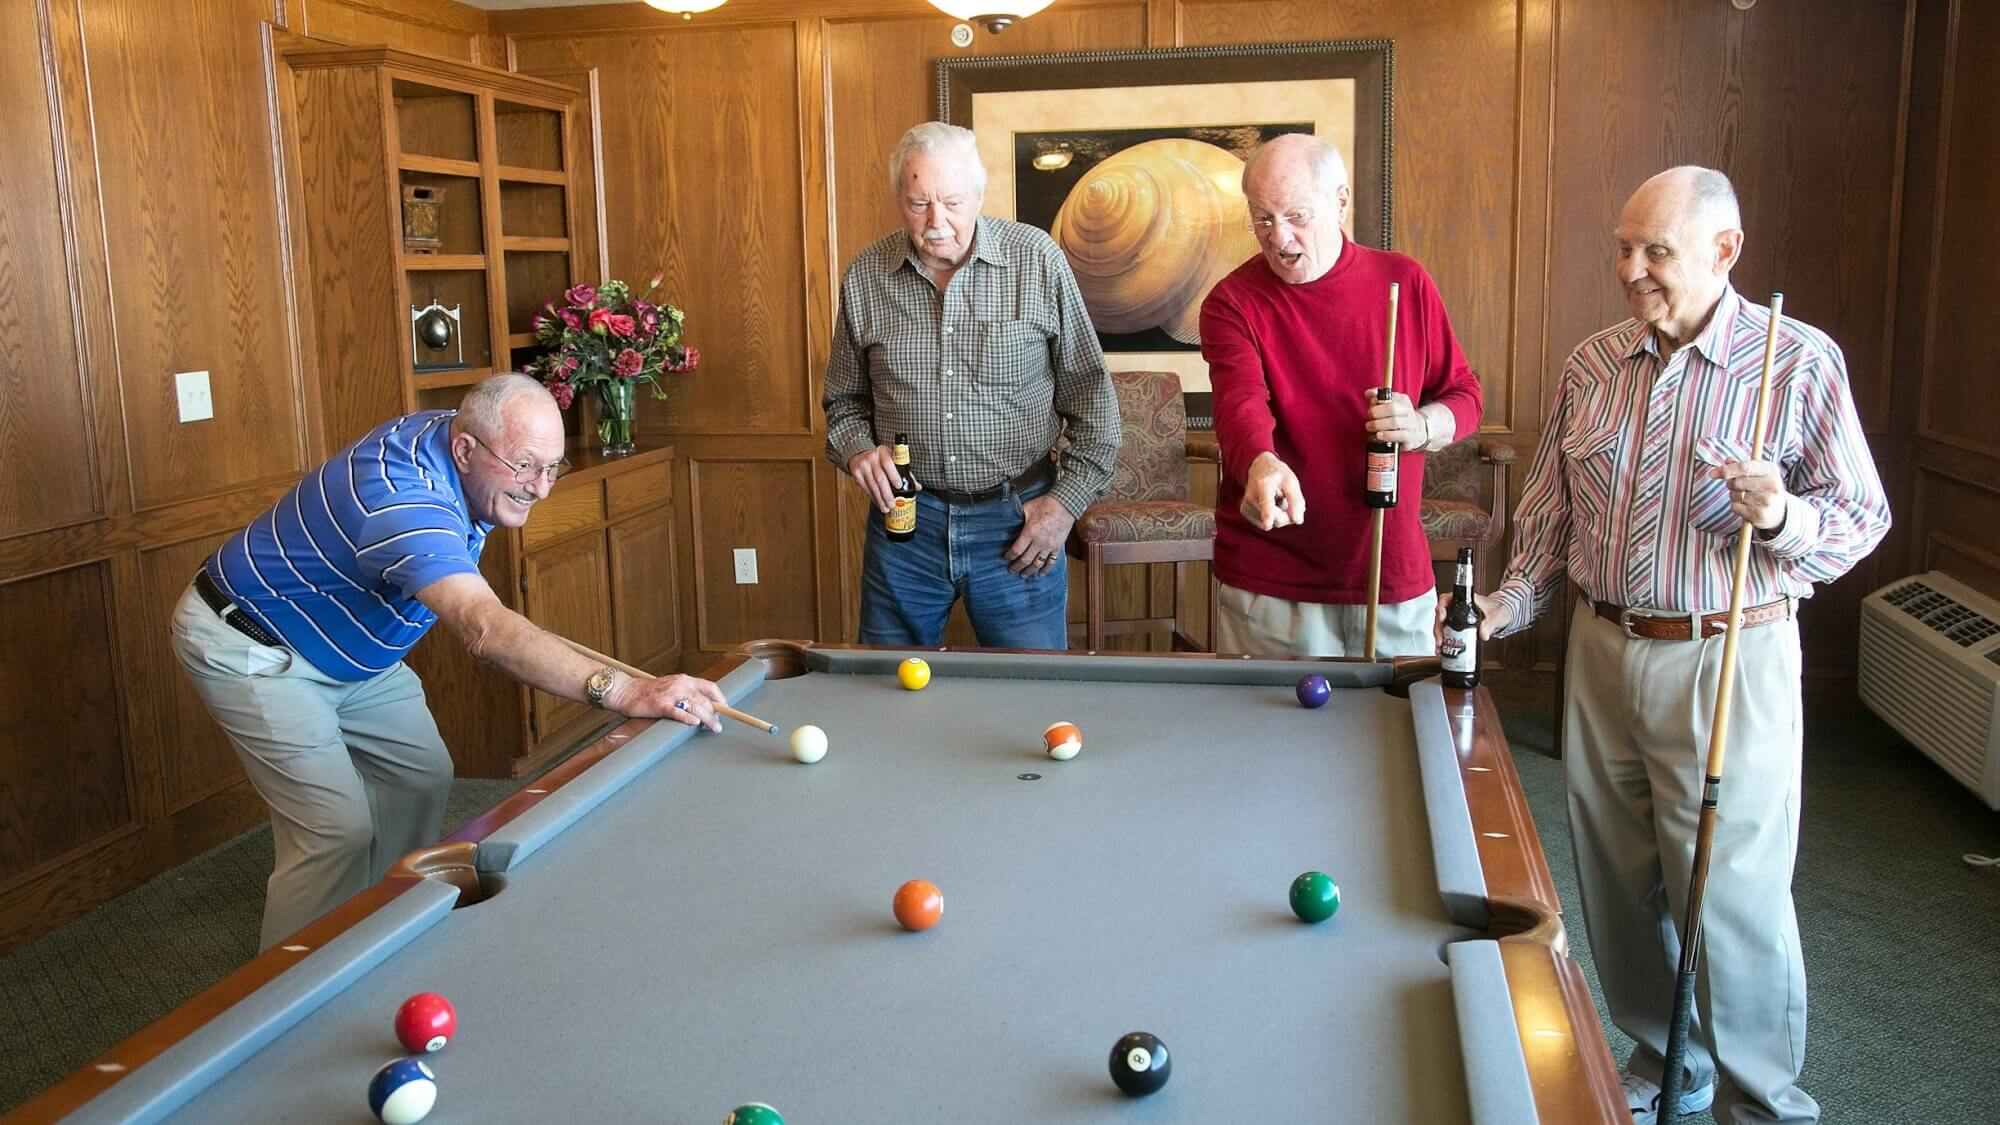 Senior friends playing billiards and drinking beer.